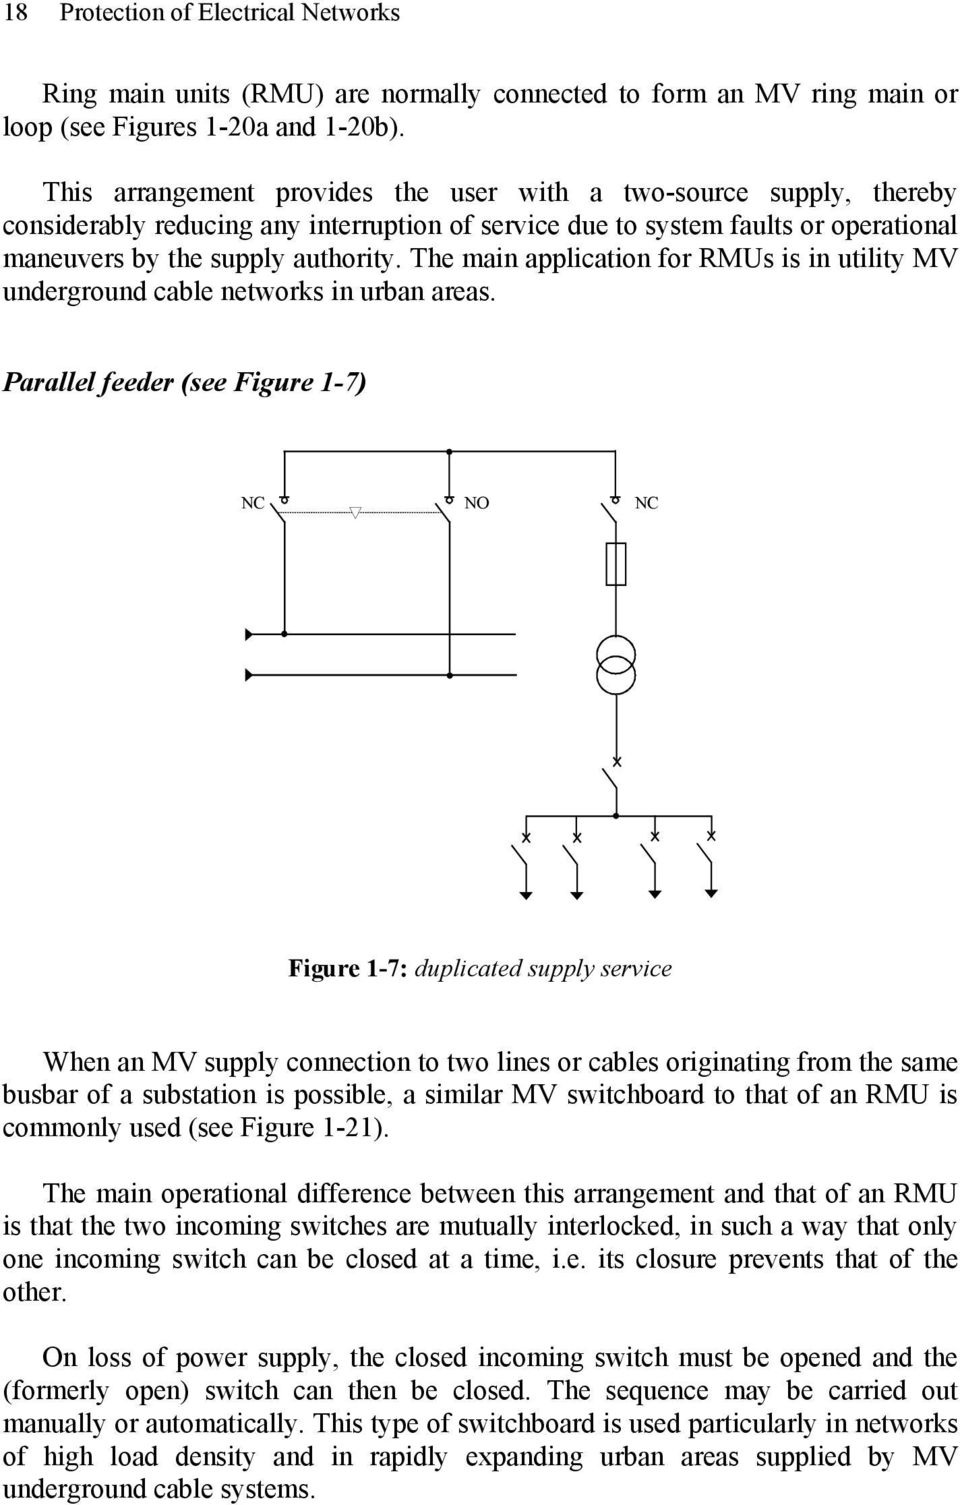 Chapter 1 Network Structures Pdf Electrical Ring Main Diagram The Application For Rmus Is In Utility Underground Cable Networks Urban Areas